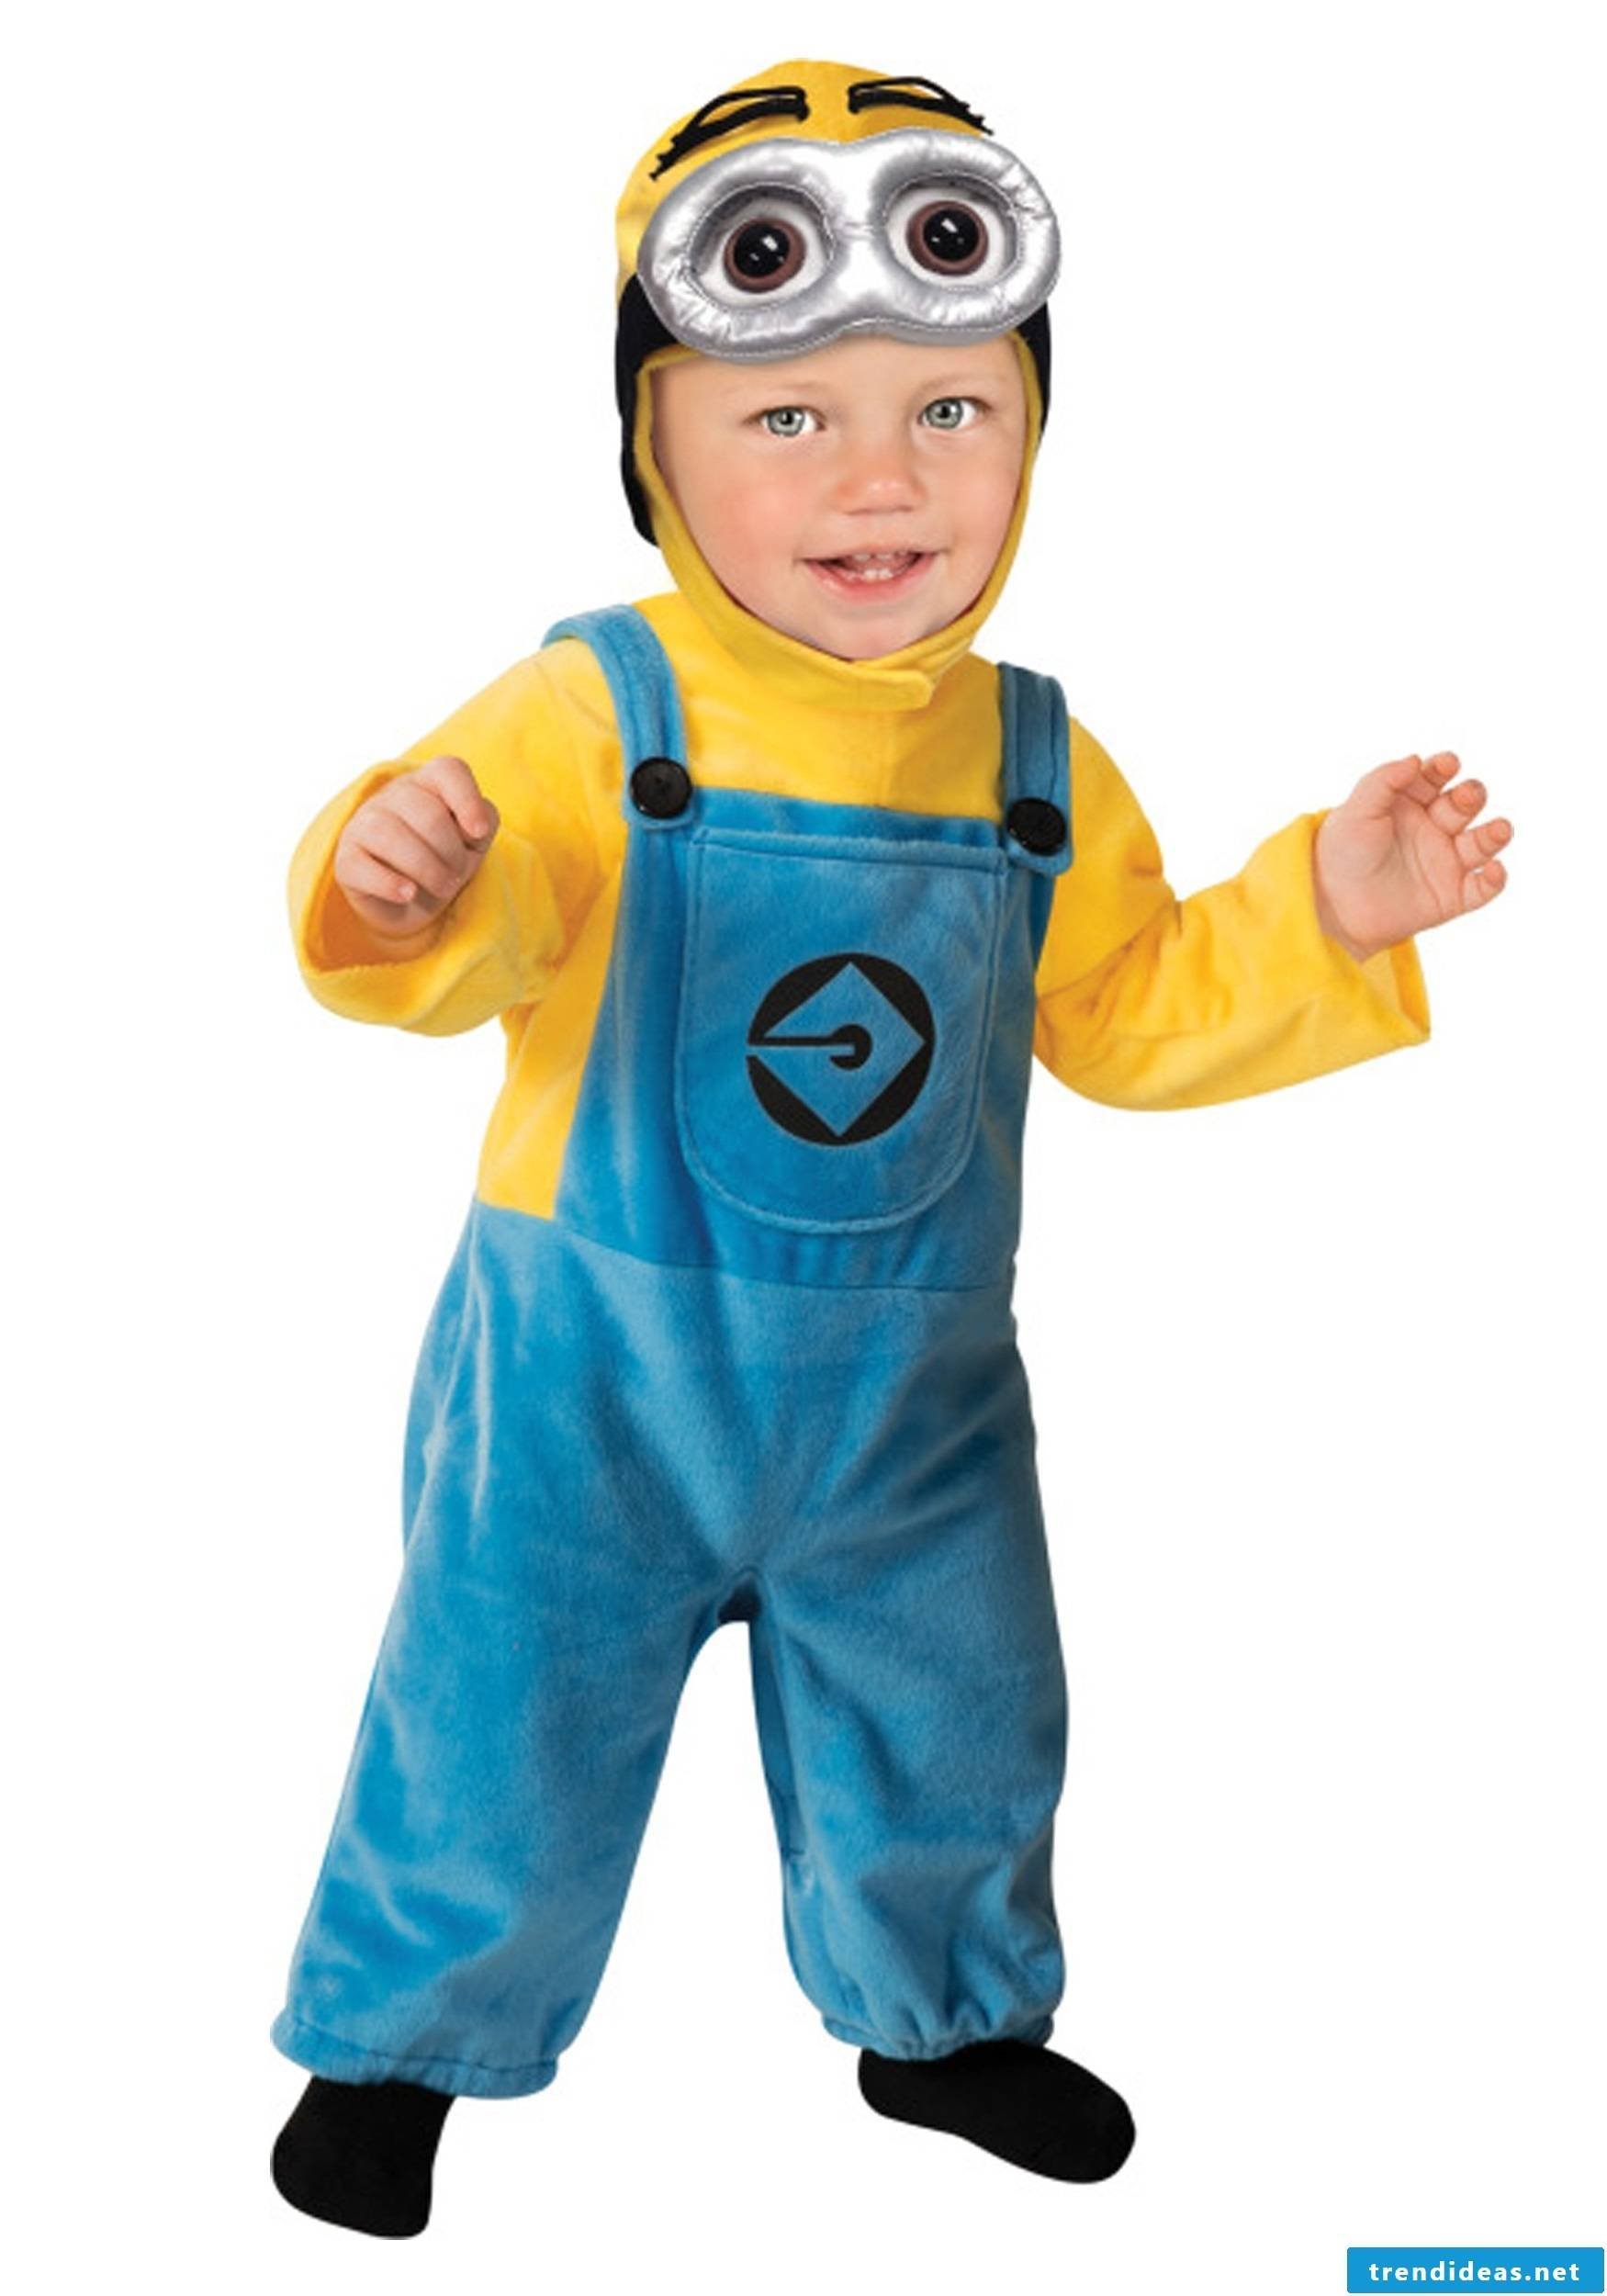 great Minion from the movie